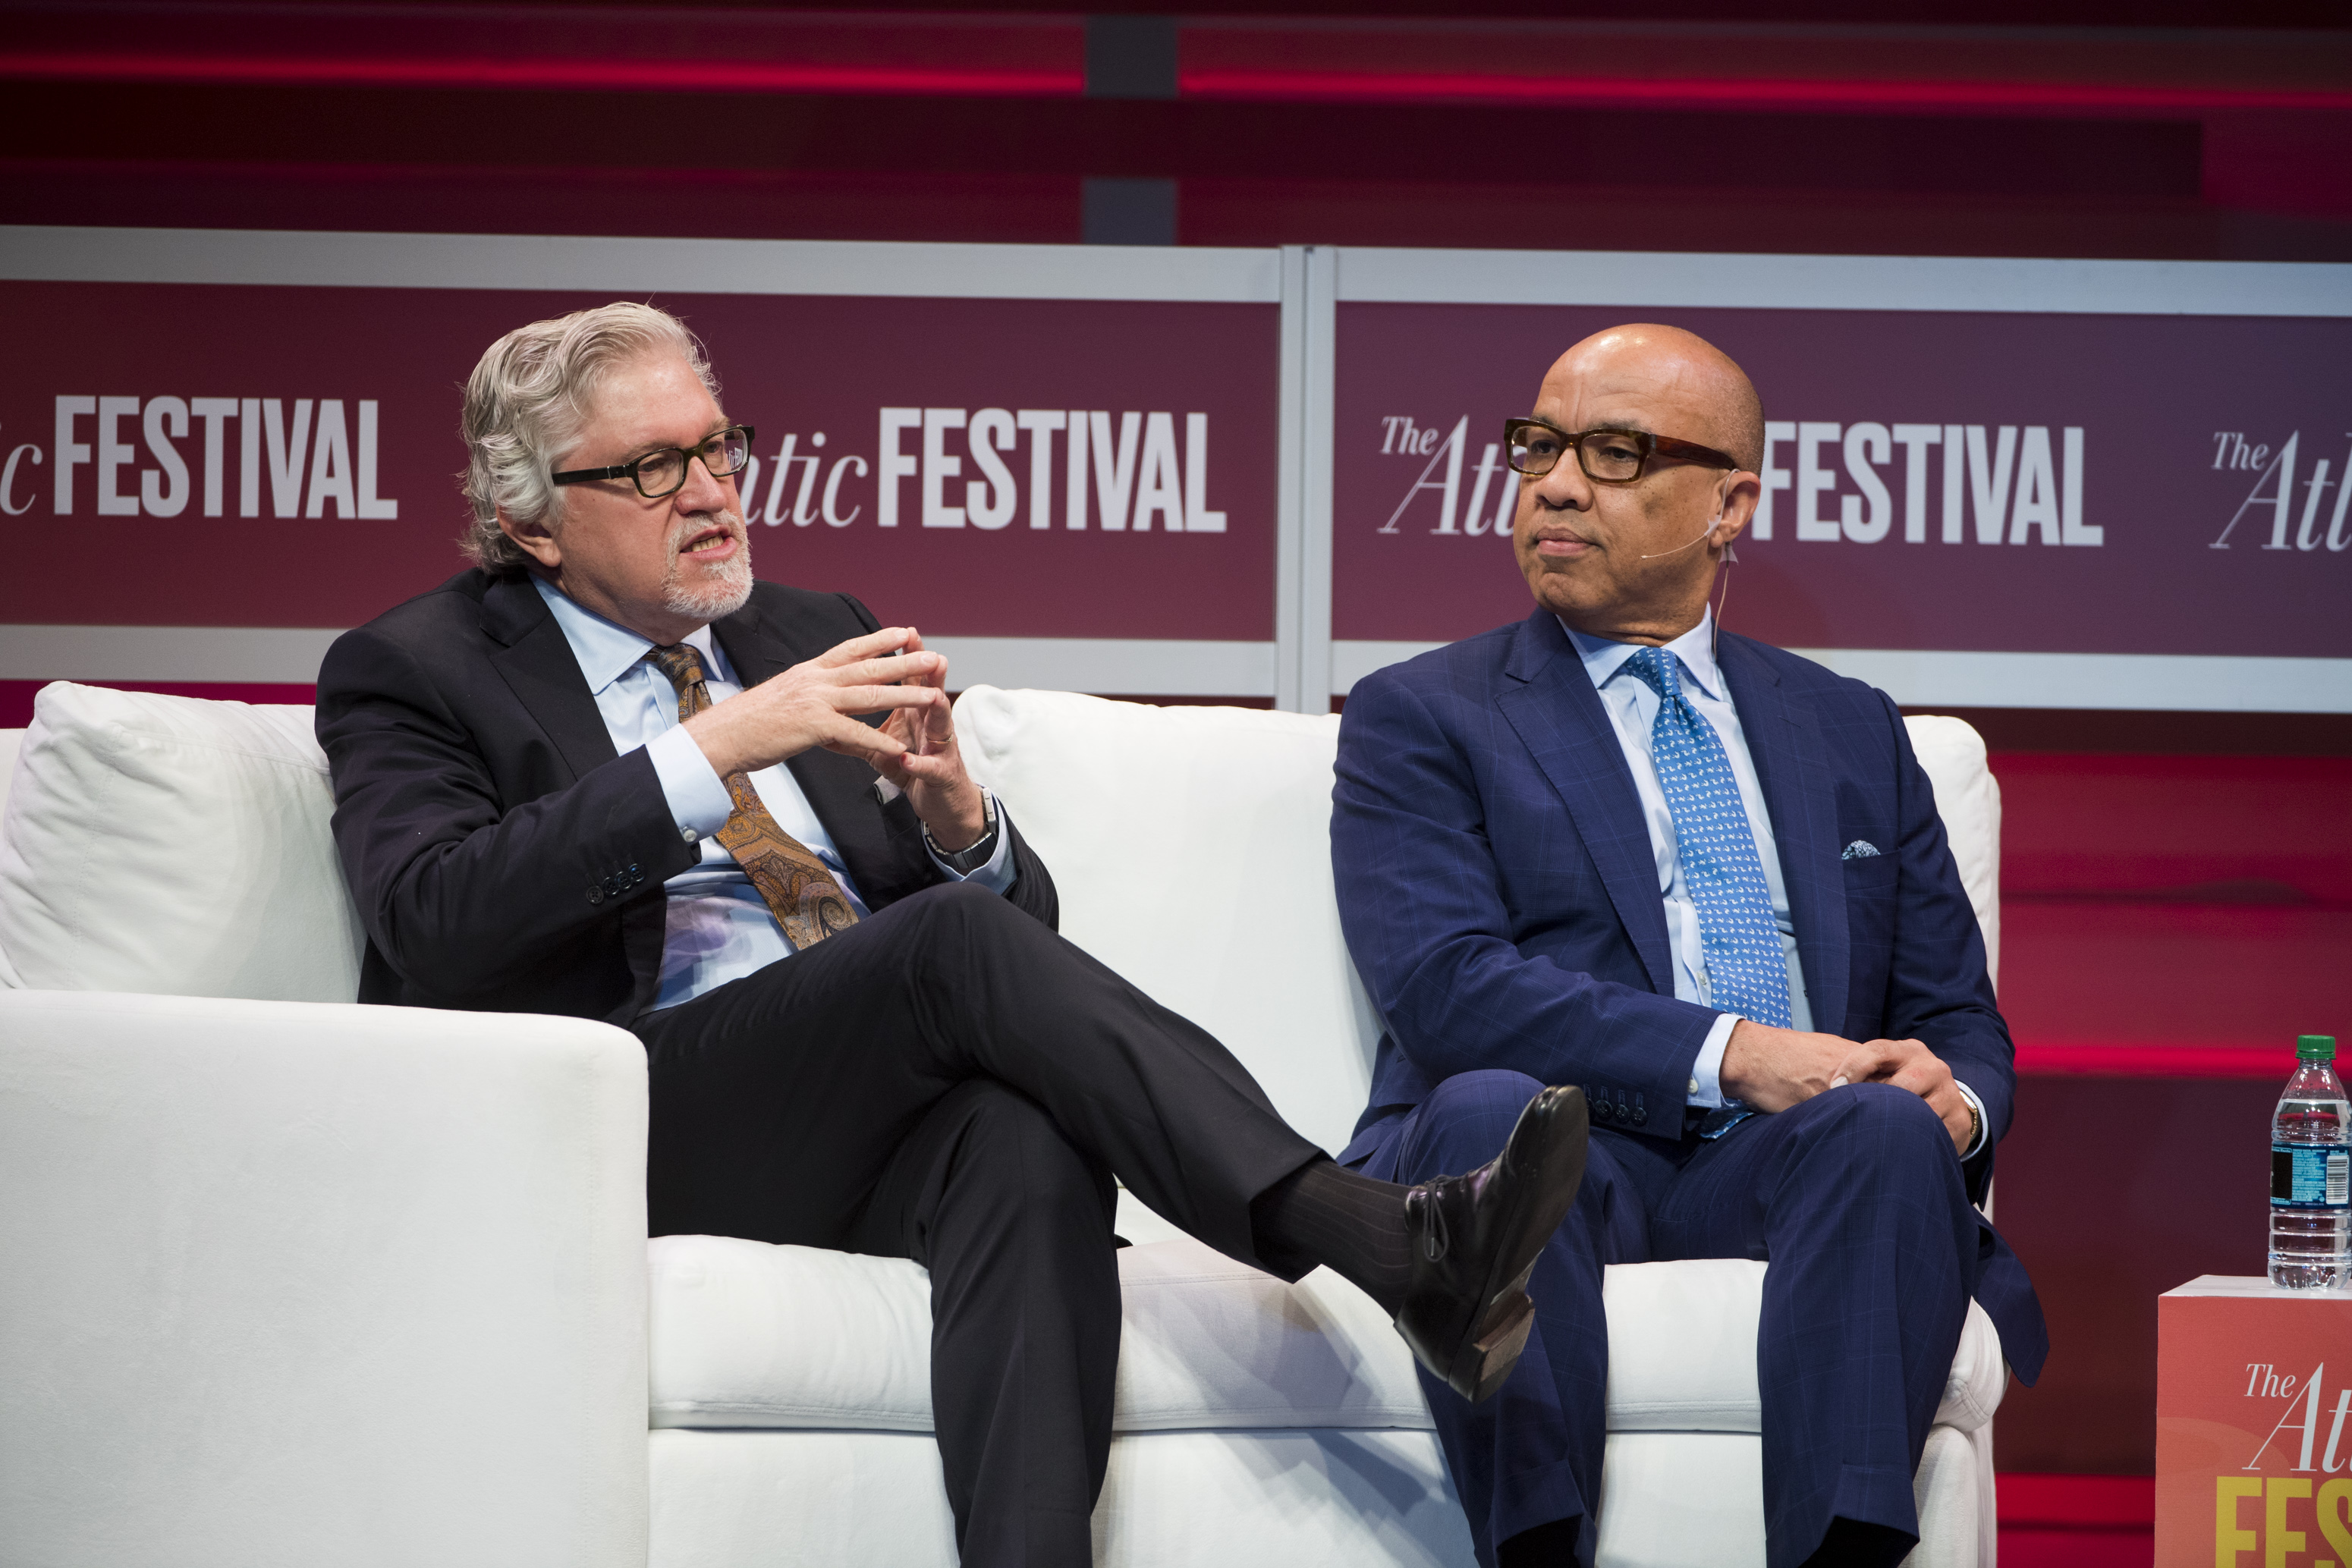 Jeff Raikes and Ford Foundation president Darren Walker discuss racial equity at the Atlantic Festival.